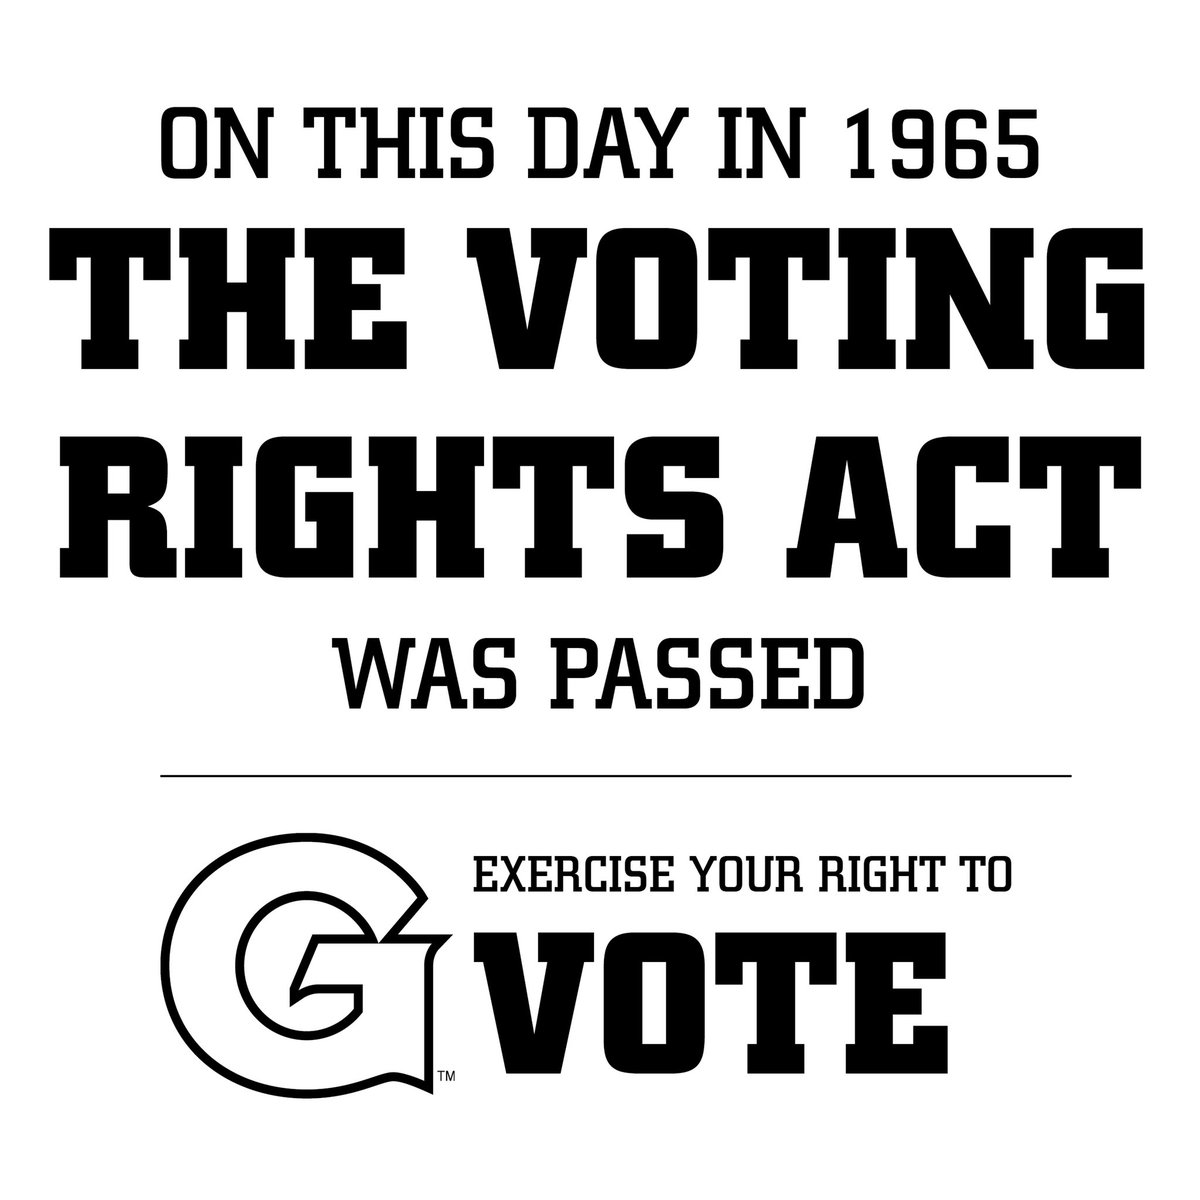 It's important that we remember those who fought for our voting rights. Exercise your right to vote. #HoyaSaxa #VotingRights